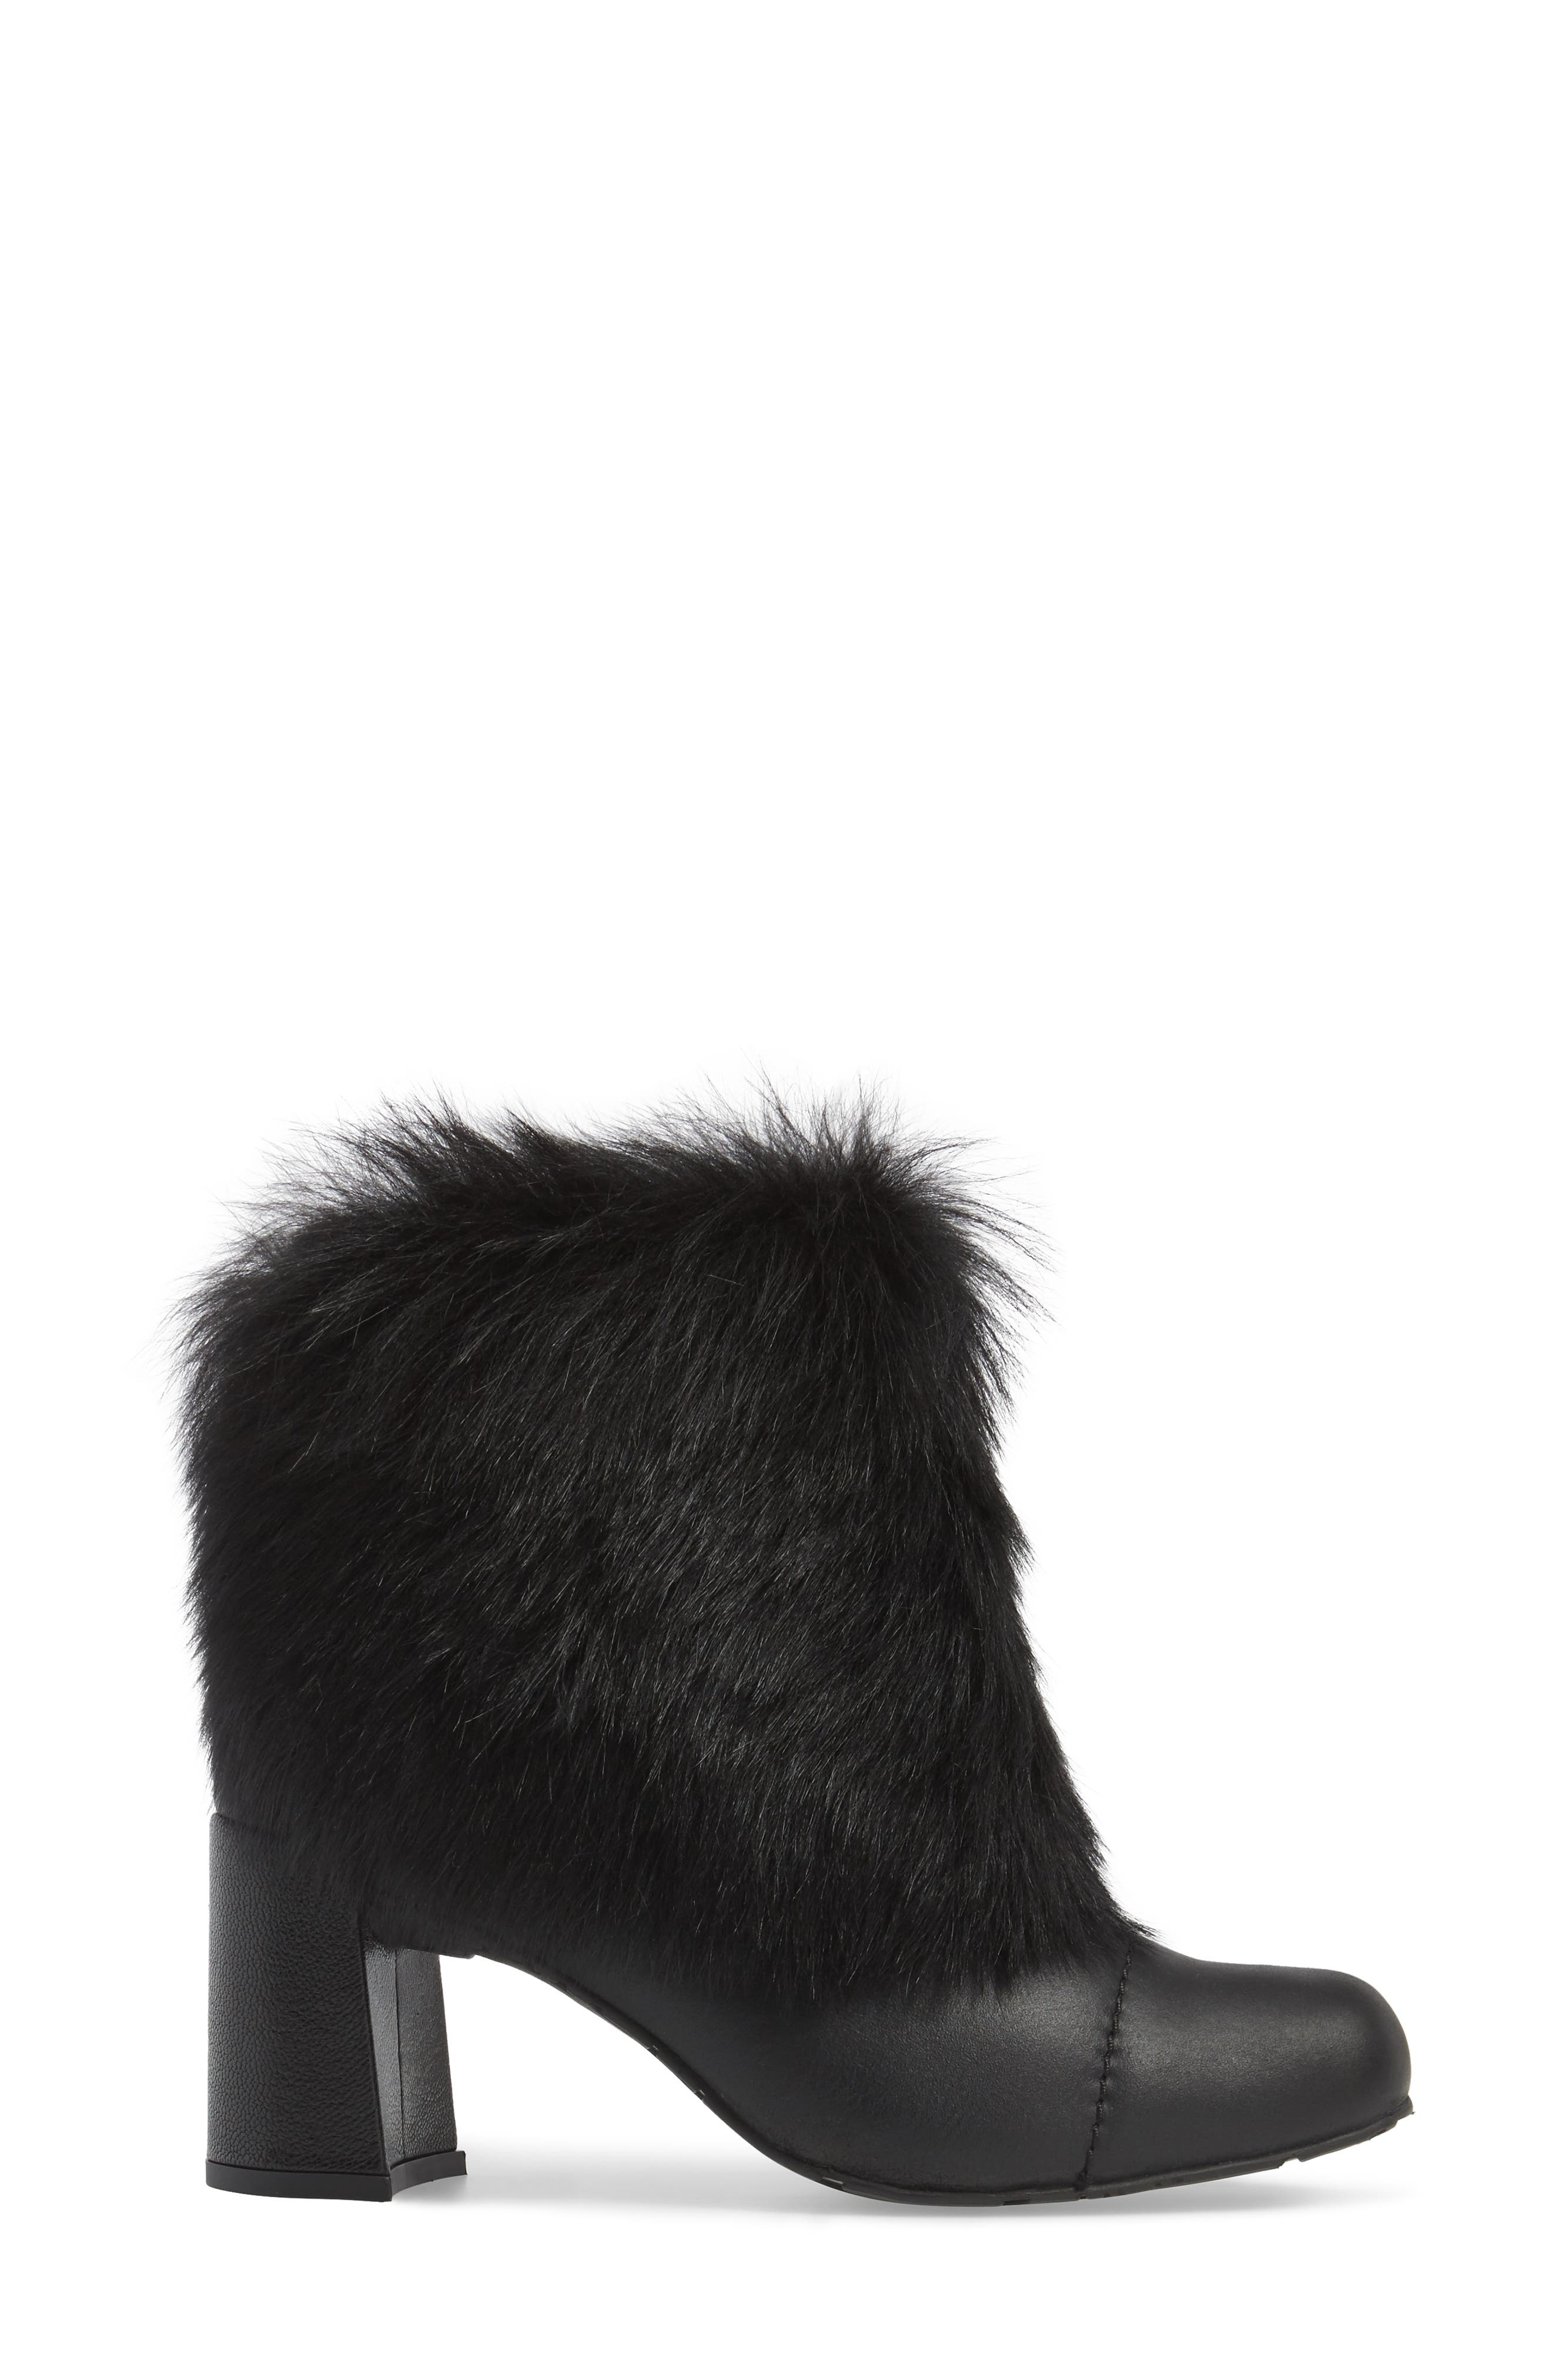 Woka Genuine Shearling Bootie,                             Alternate thumbnail 3, color,                             001